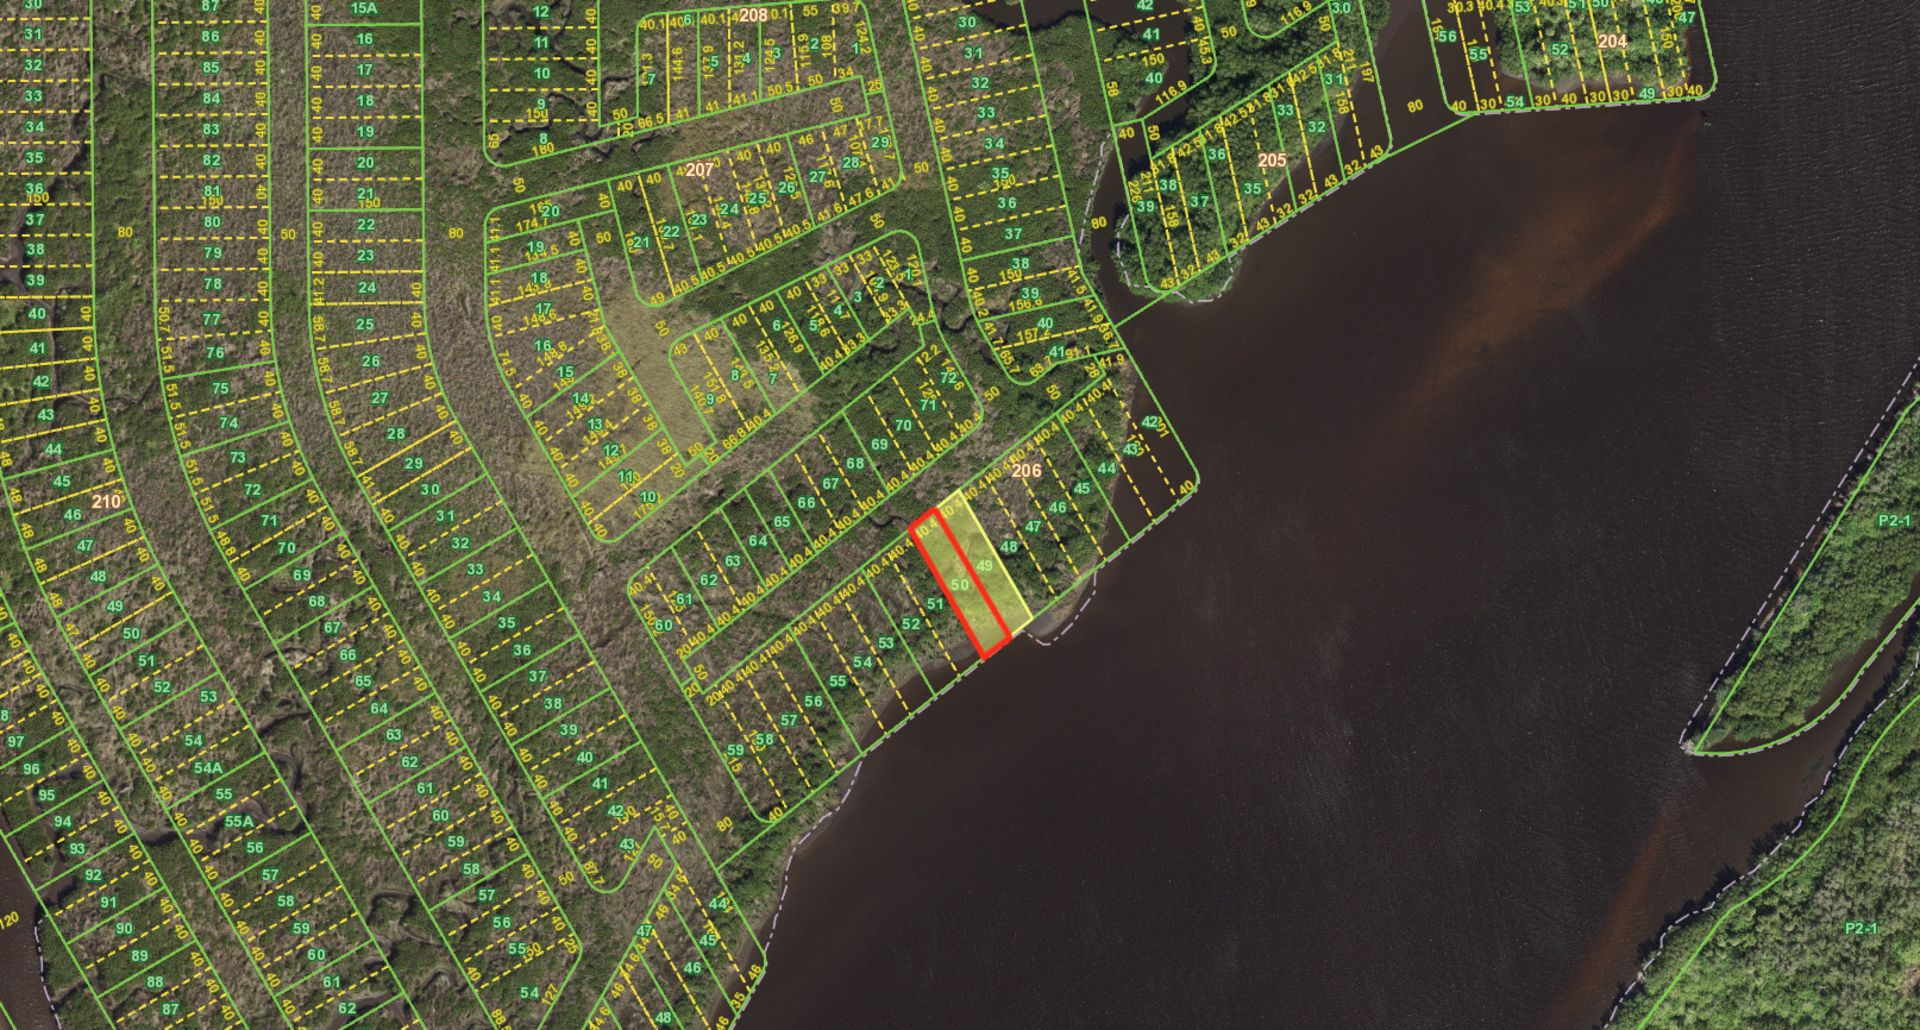 Own a Lot On the Peace River in Charlotte County, Florida! - Image 3 of 4